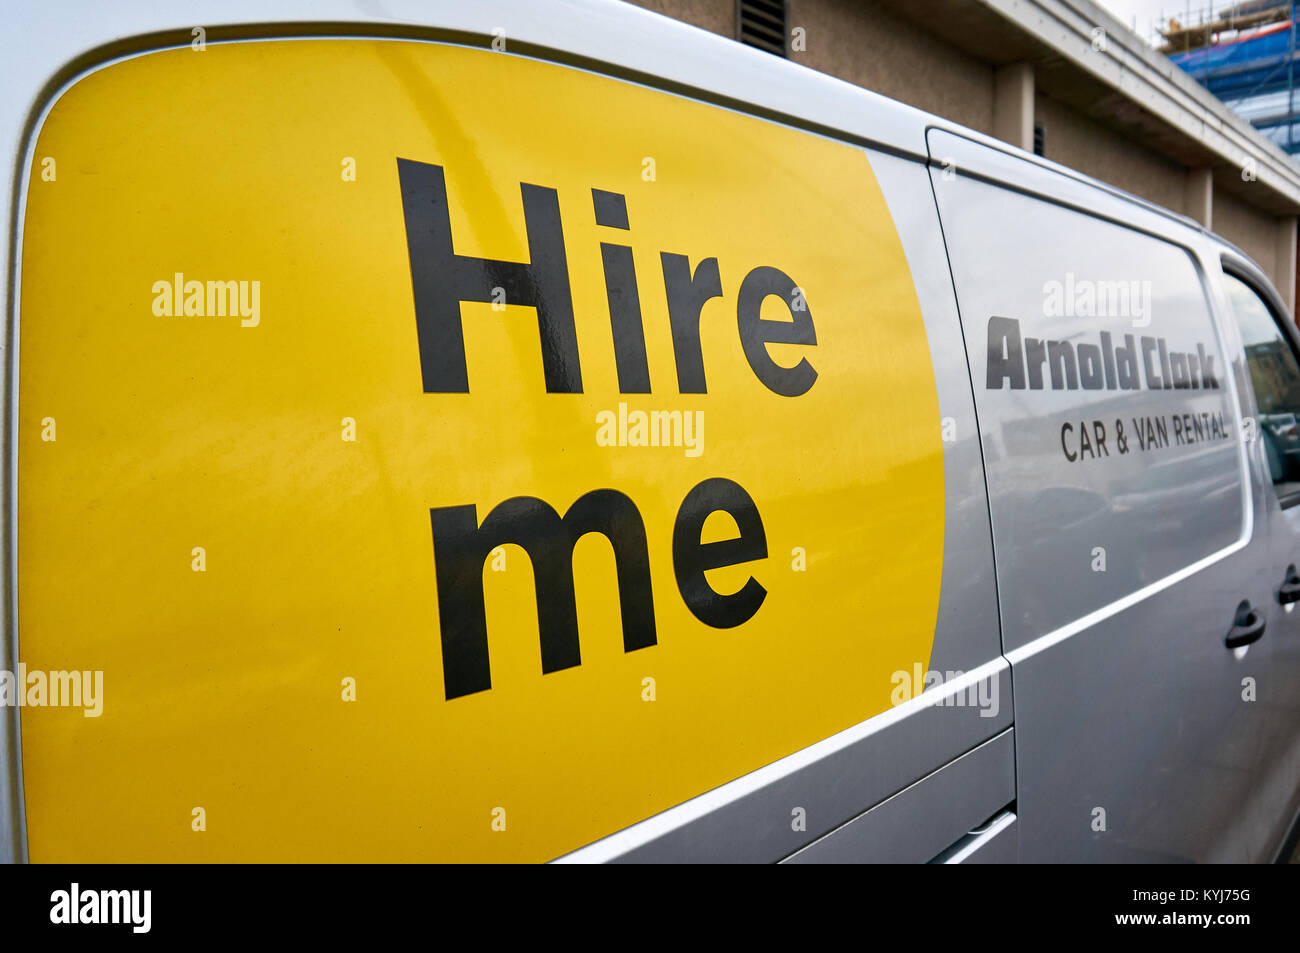 Arnold Clark Stock Photos Images Alamy Fuel Filters Photograph Of Logo On The Van Car And Rental Company